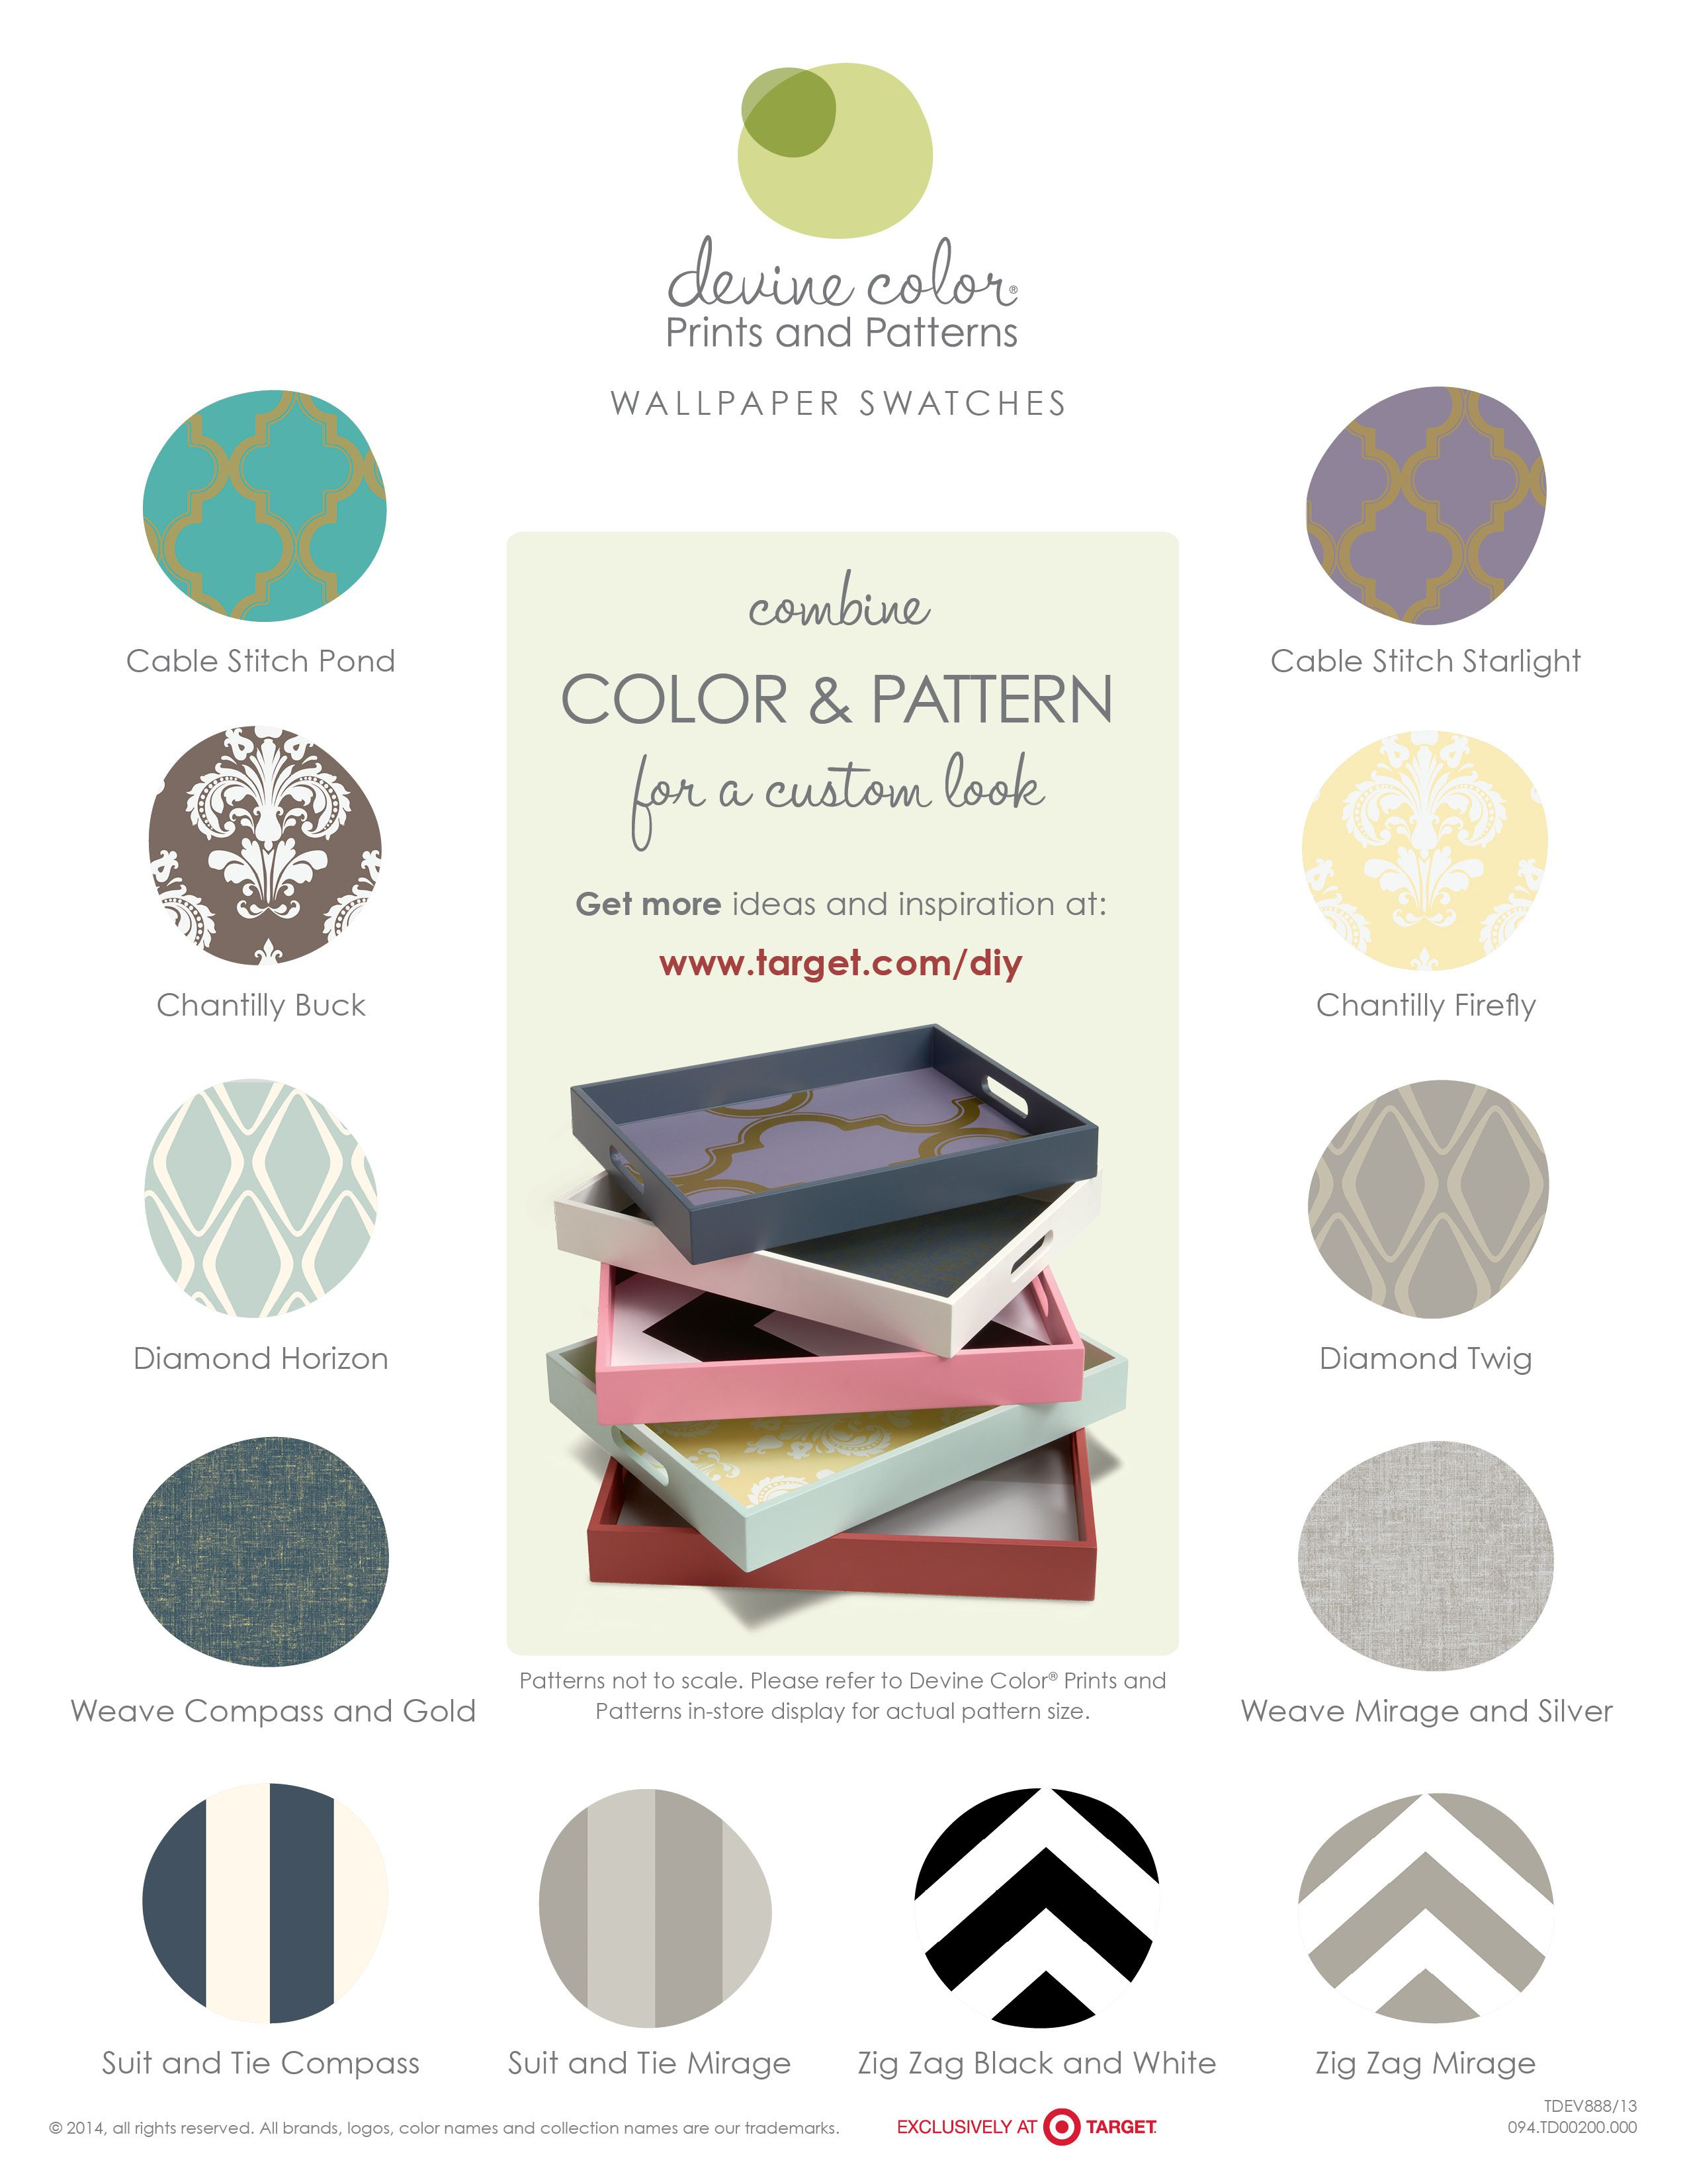 The new Devine Color repositionalble wallpaper collection